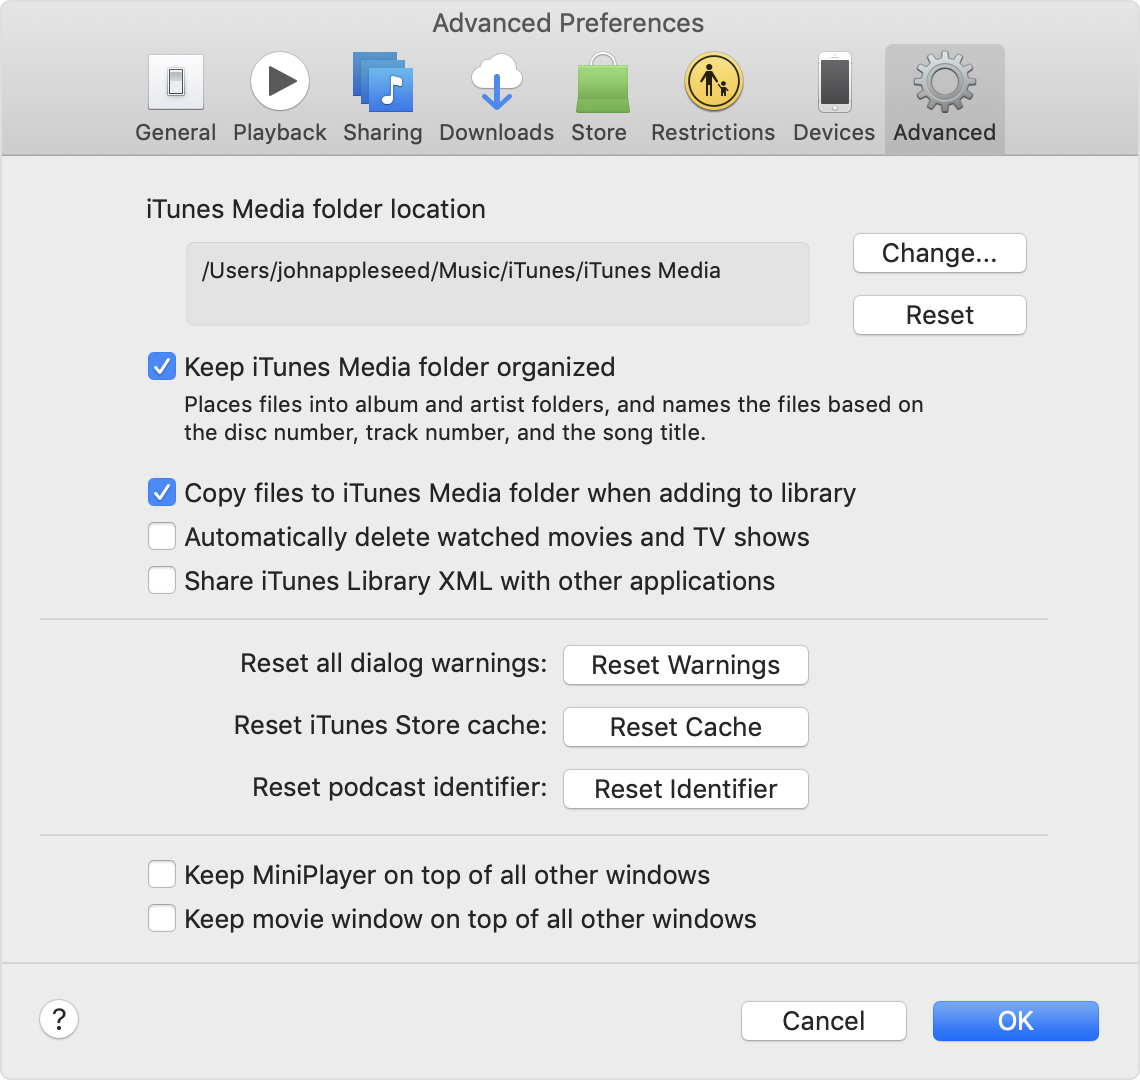 The Advanced Preferences panel in iTunes Preferences. It shows the location of the iTunes Media folder.